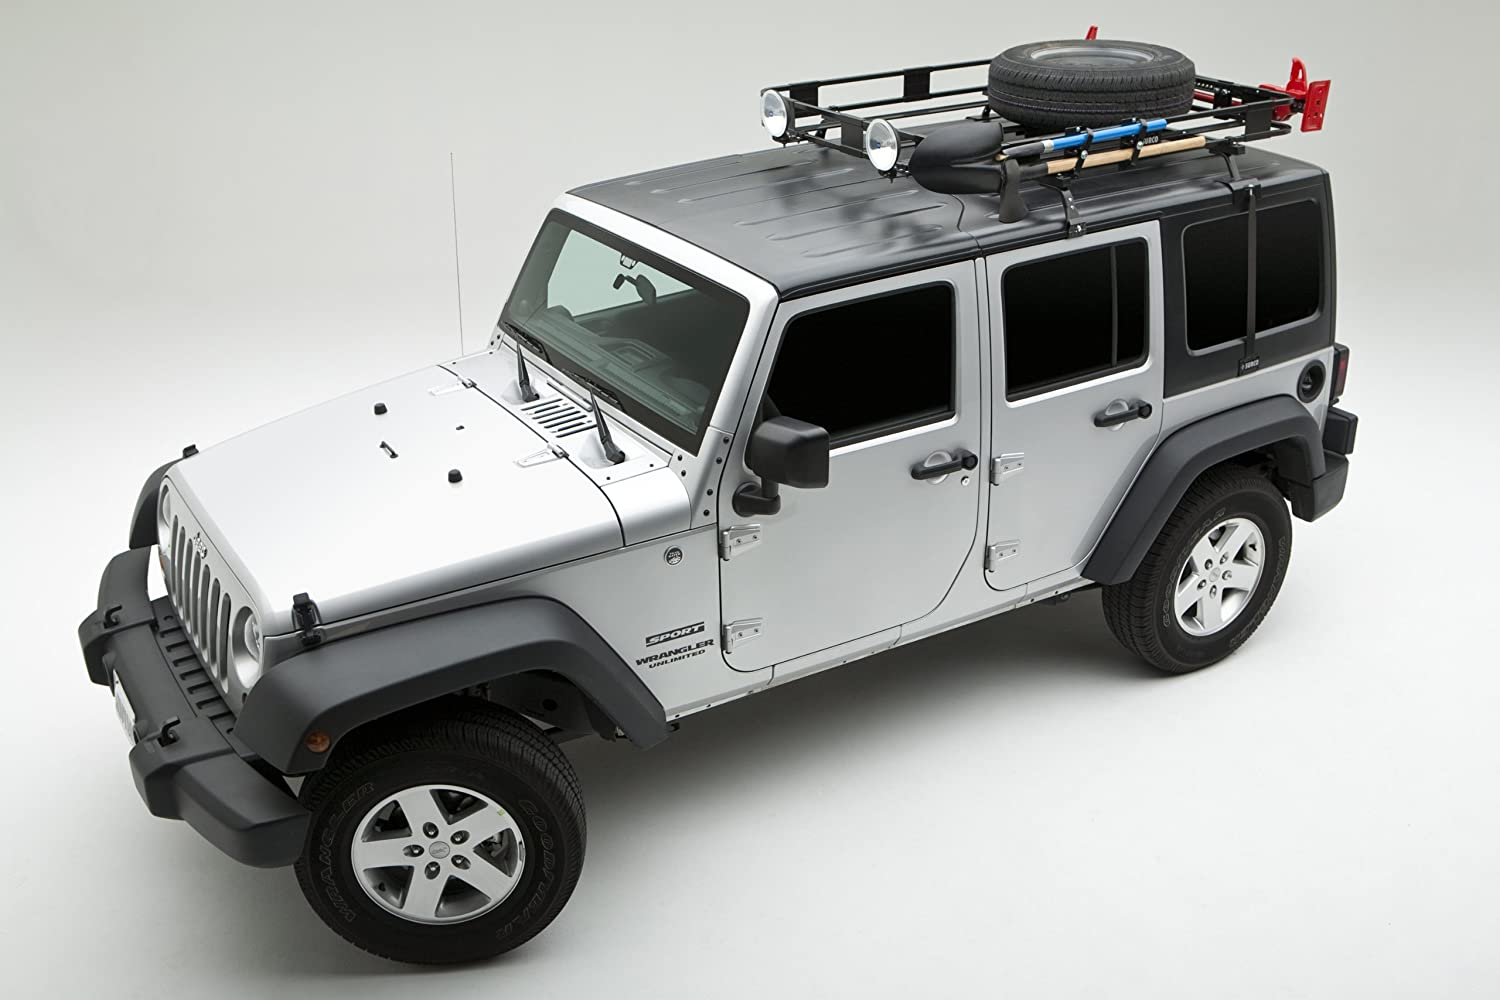 Marvelous Amazon.com: Surco J600 Roof Rack Hard Top Adapter For Jeep JK: Automotive